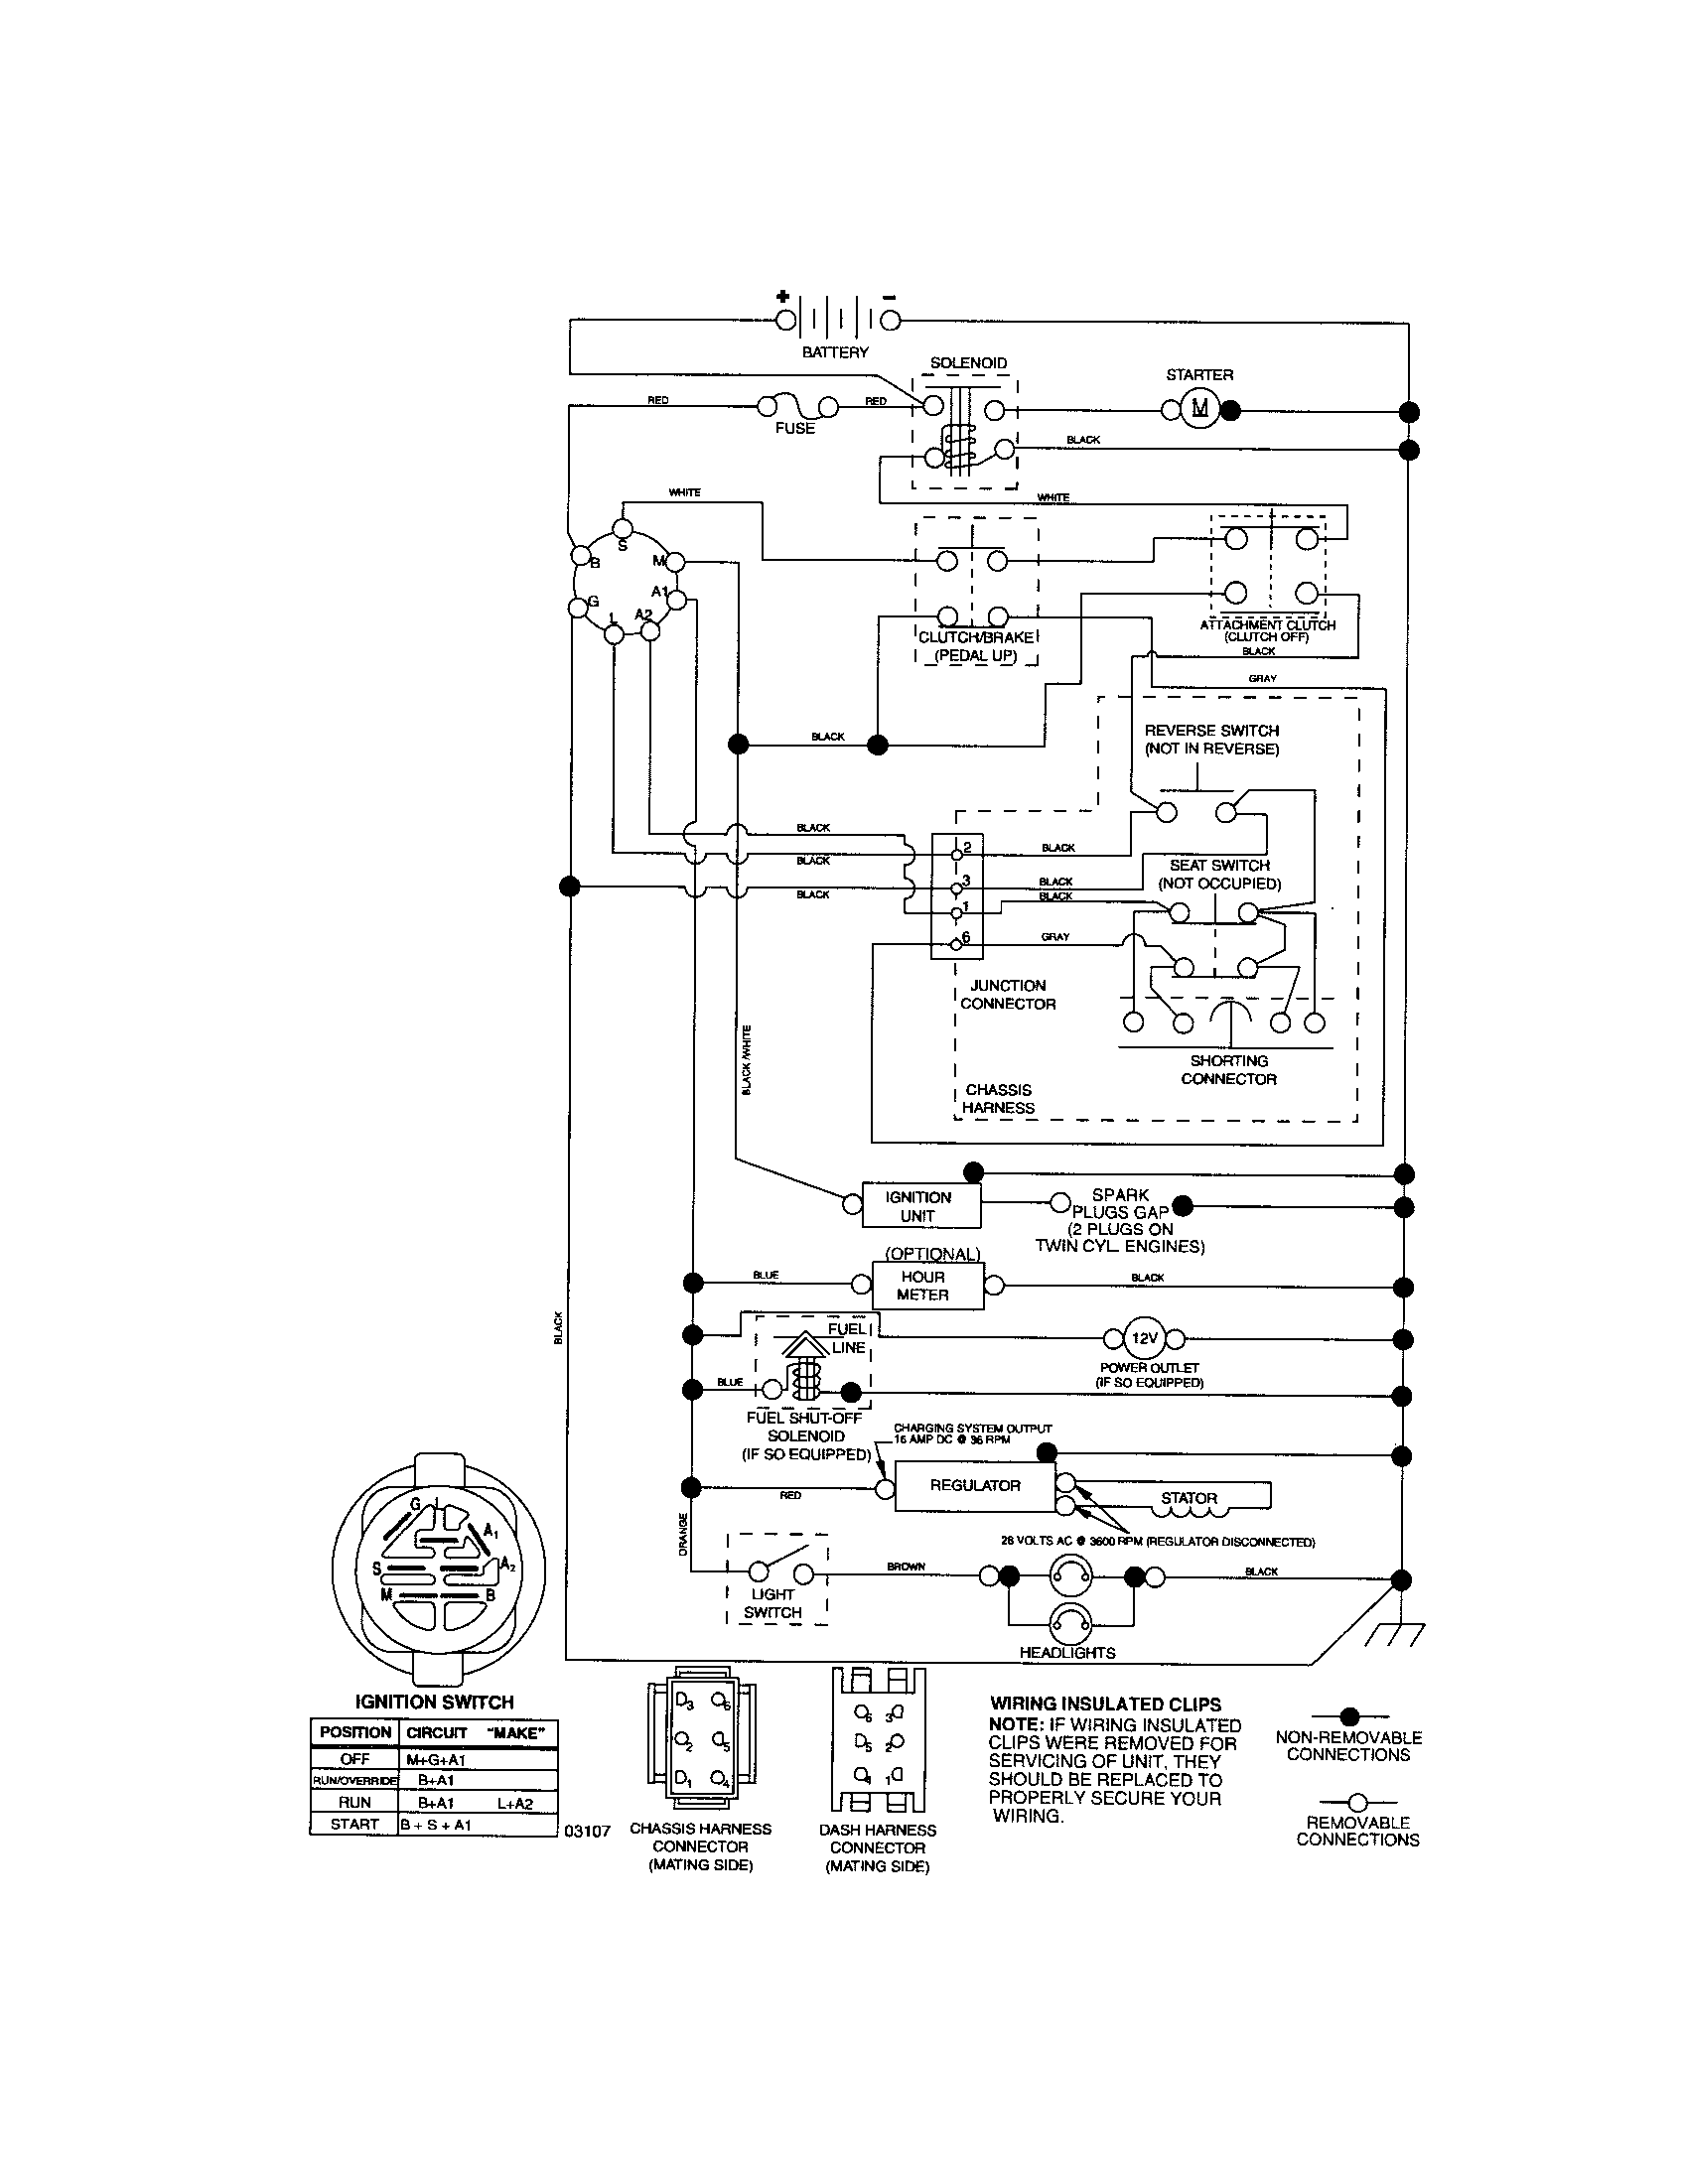 6af5f1447fd13c8443376822ddc1e105 craftsman riding mower electrical diagram wiring diagram craftsman lt4000 wiring diagram at crackthecode.co